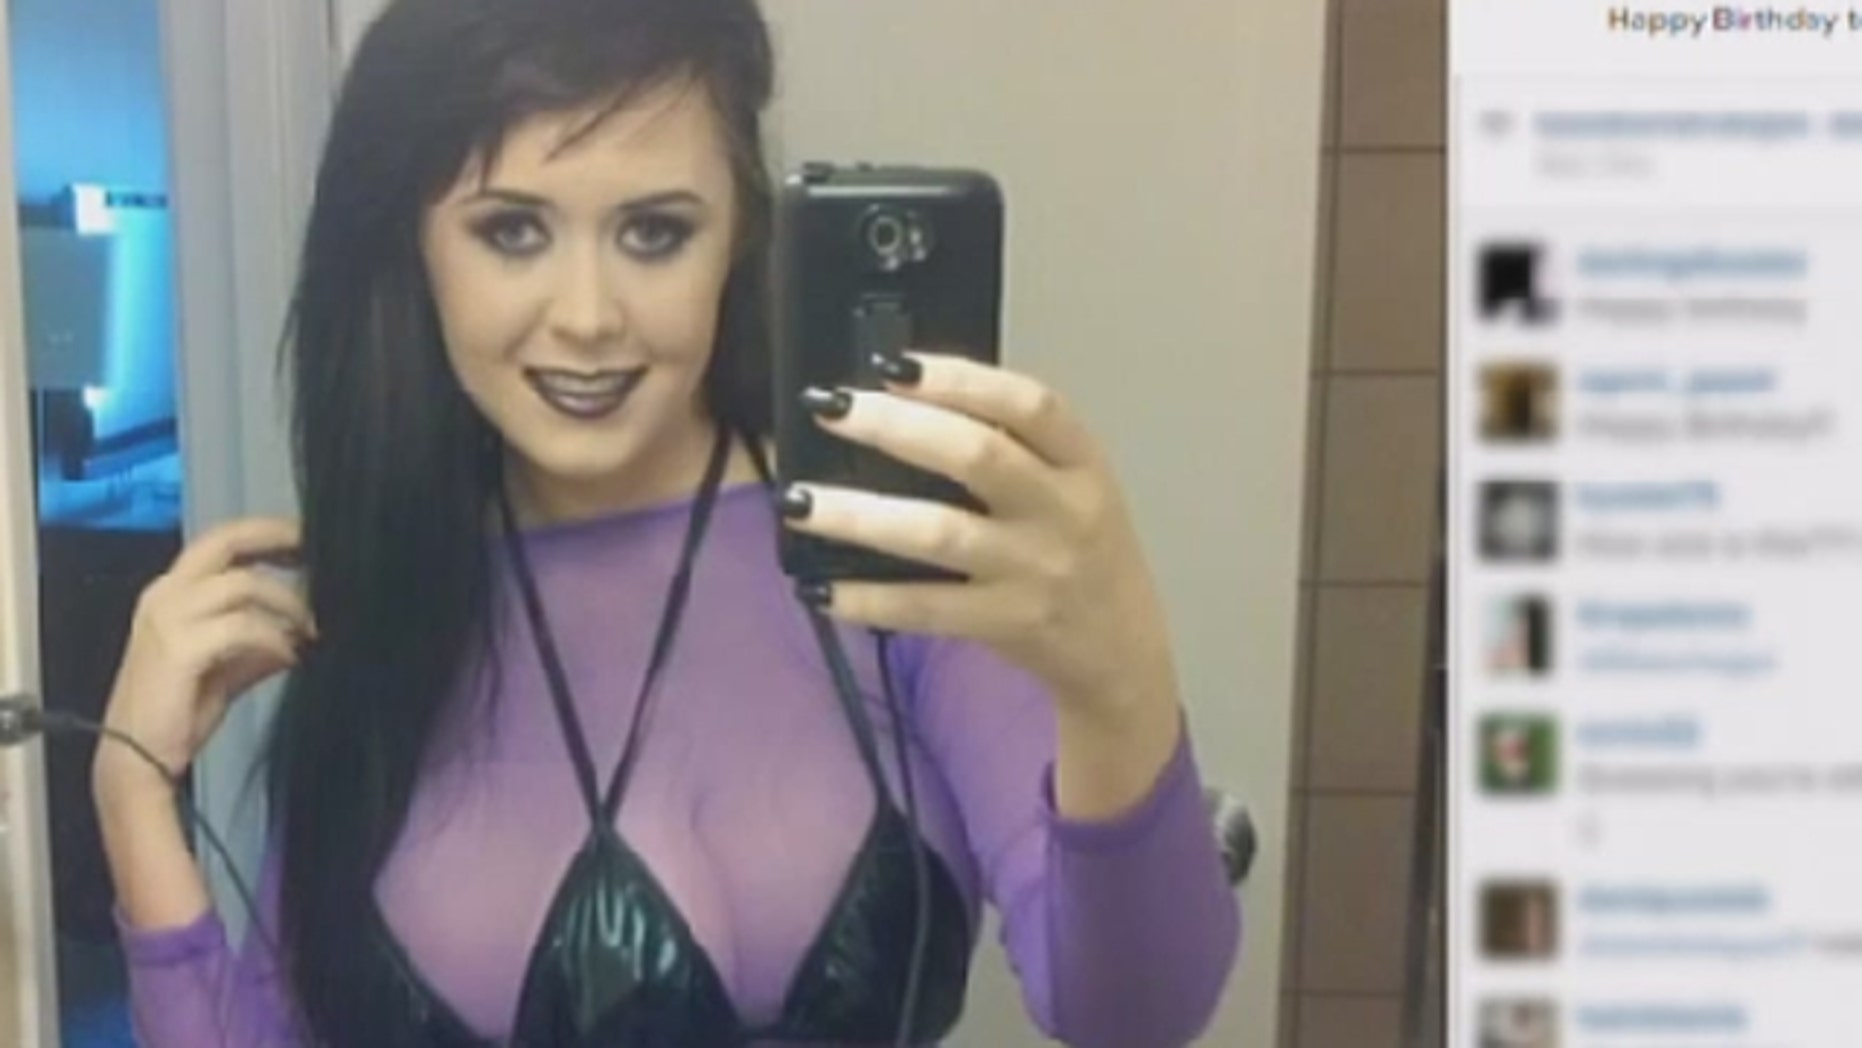 A young woman from Tampa, Fla., has become the latest viral sensation by claiming she had plastic surgery to get a third breast.